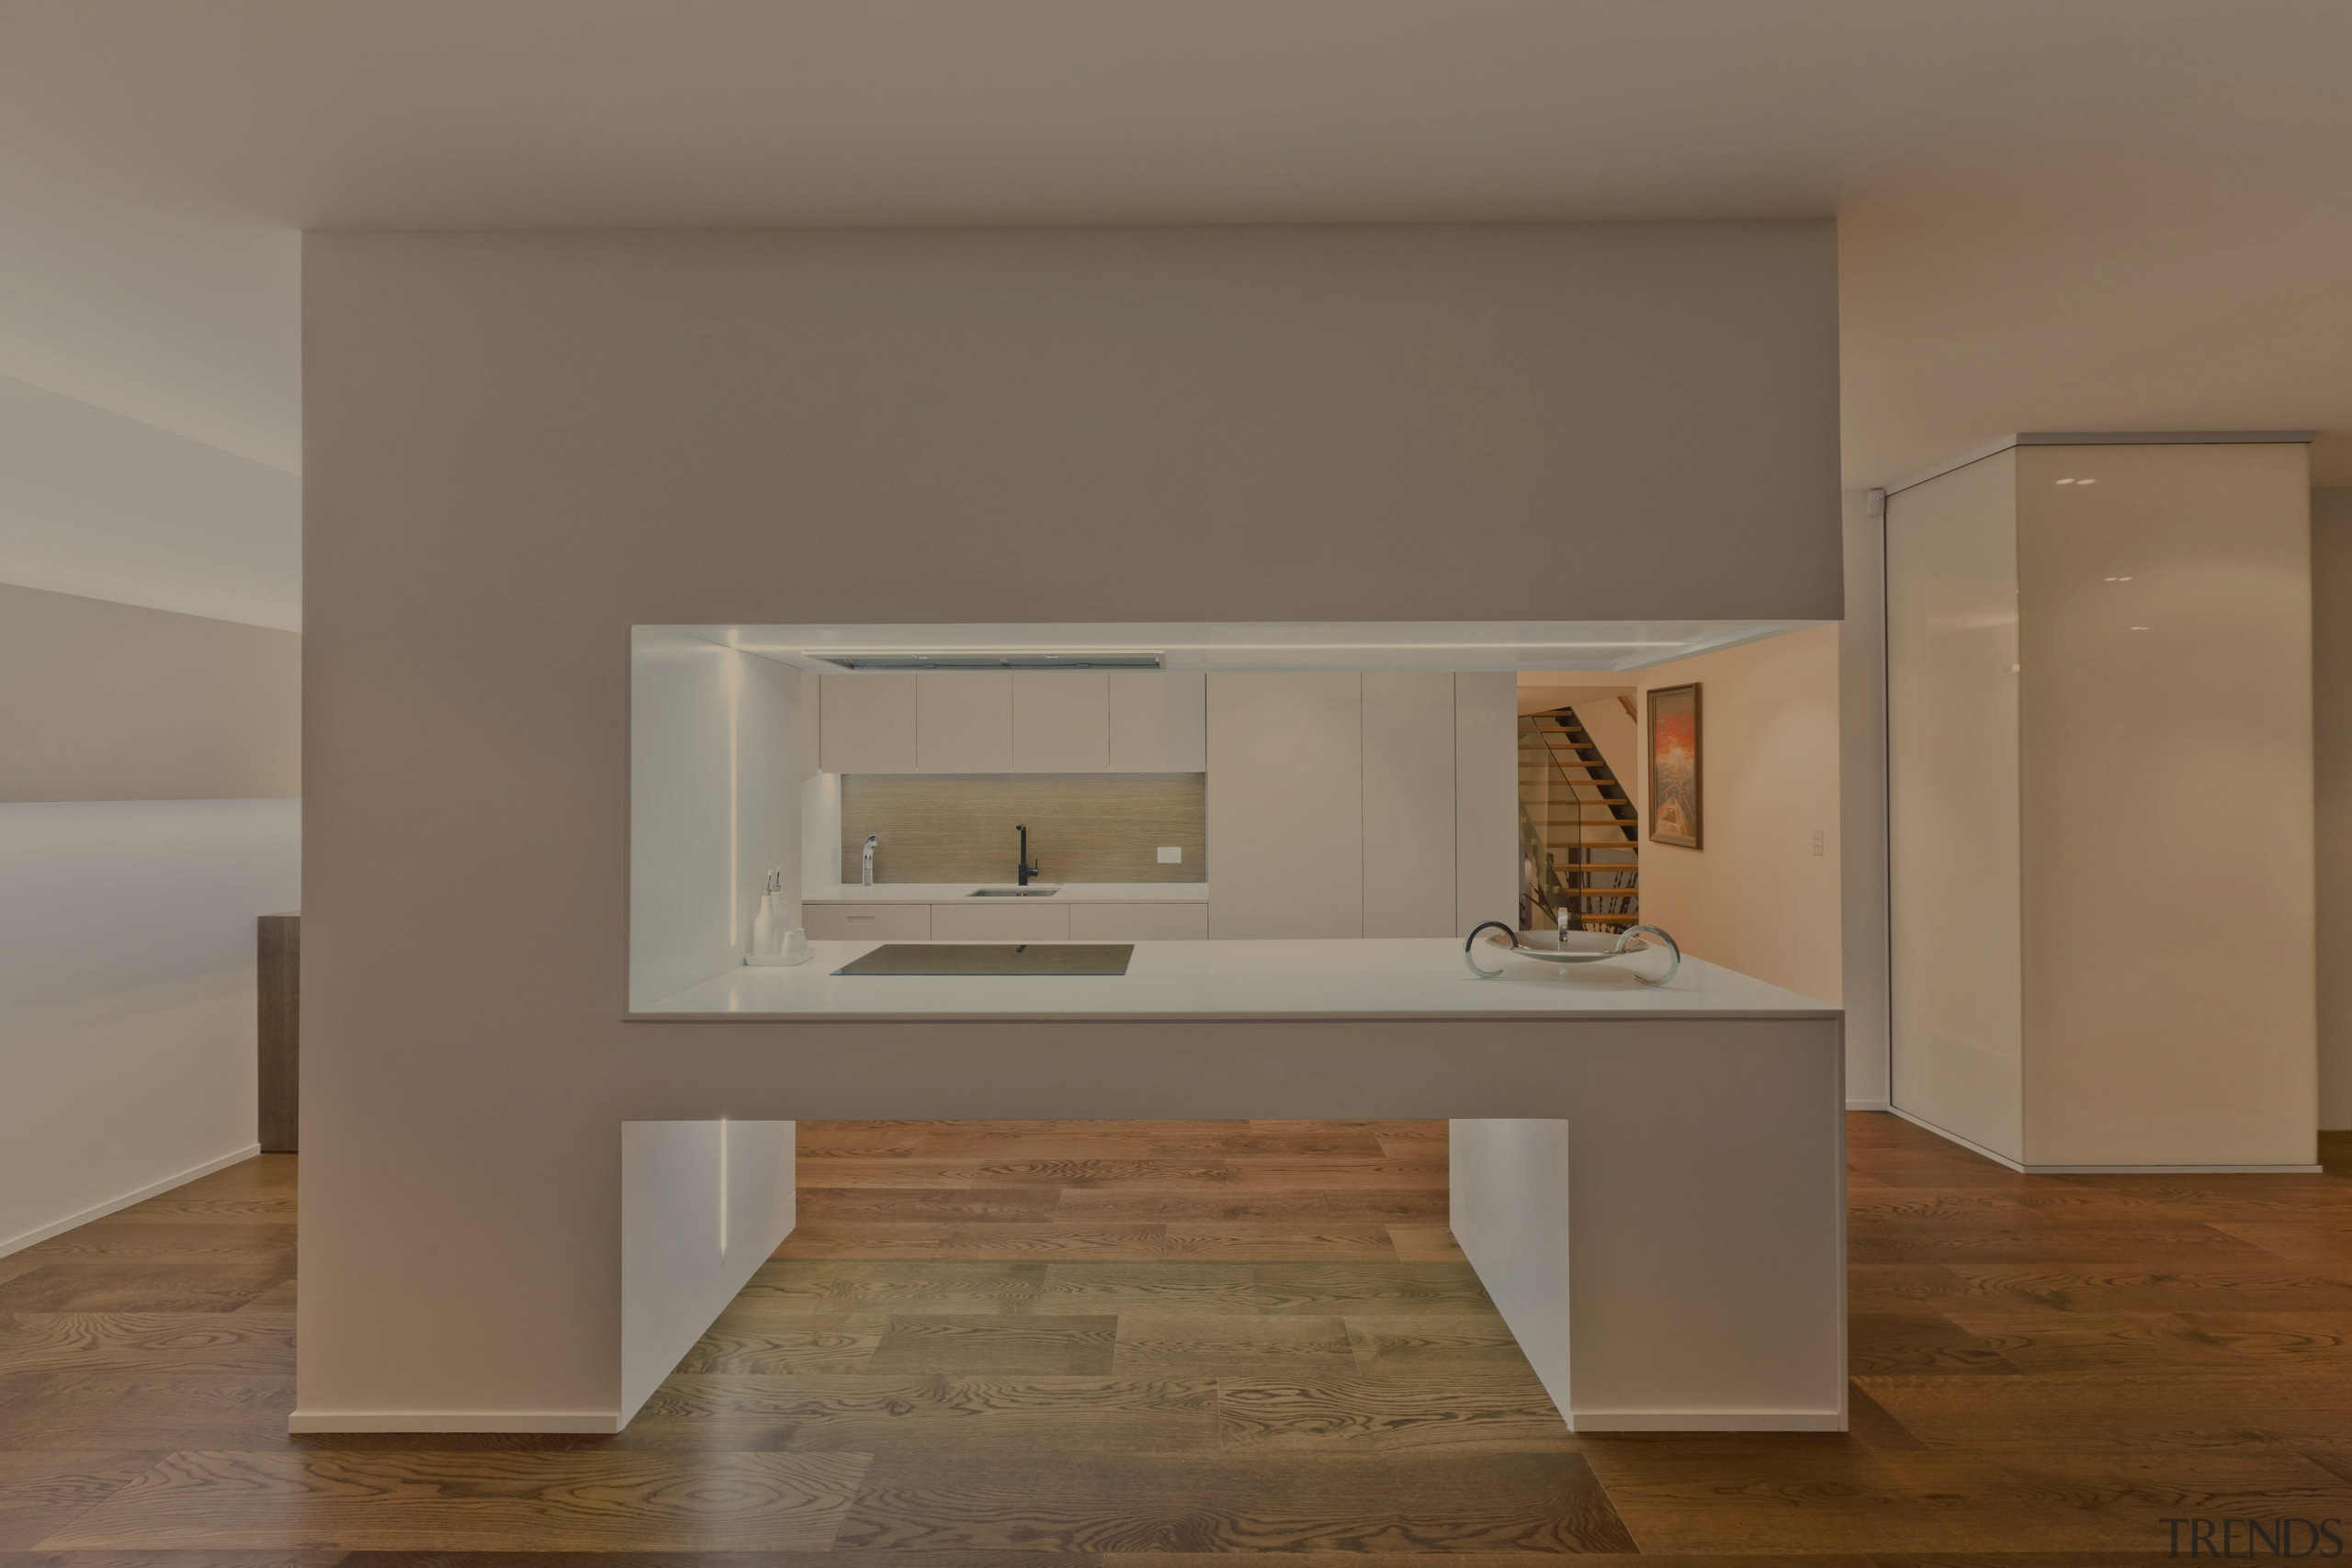 A view of a kitchen designed by Celia fireplace, floor, furniture, hearth, interior design, product design, table, brown